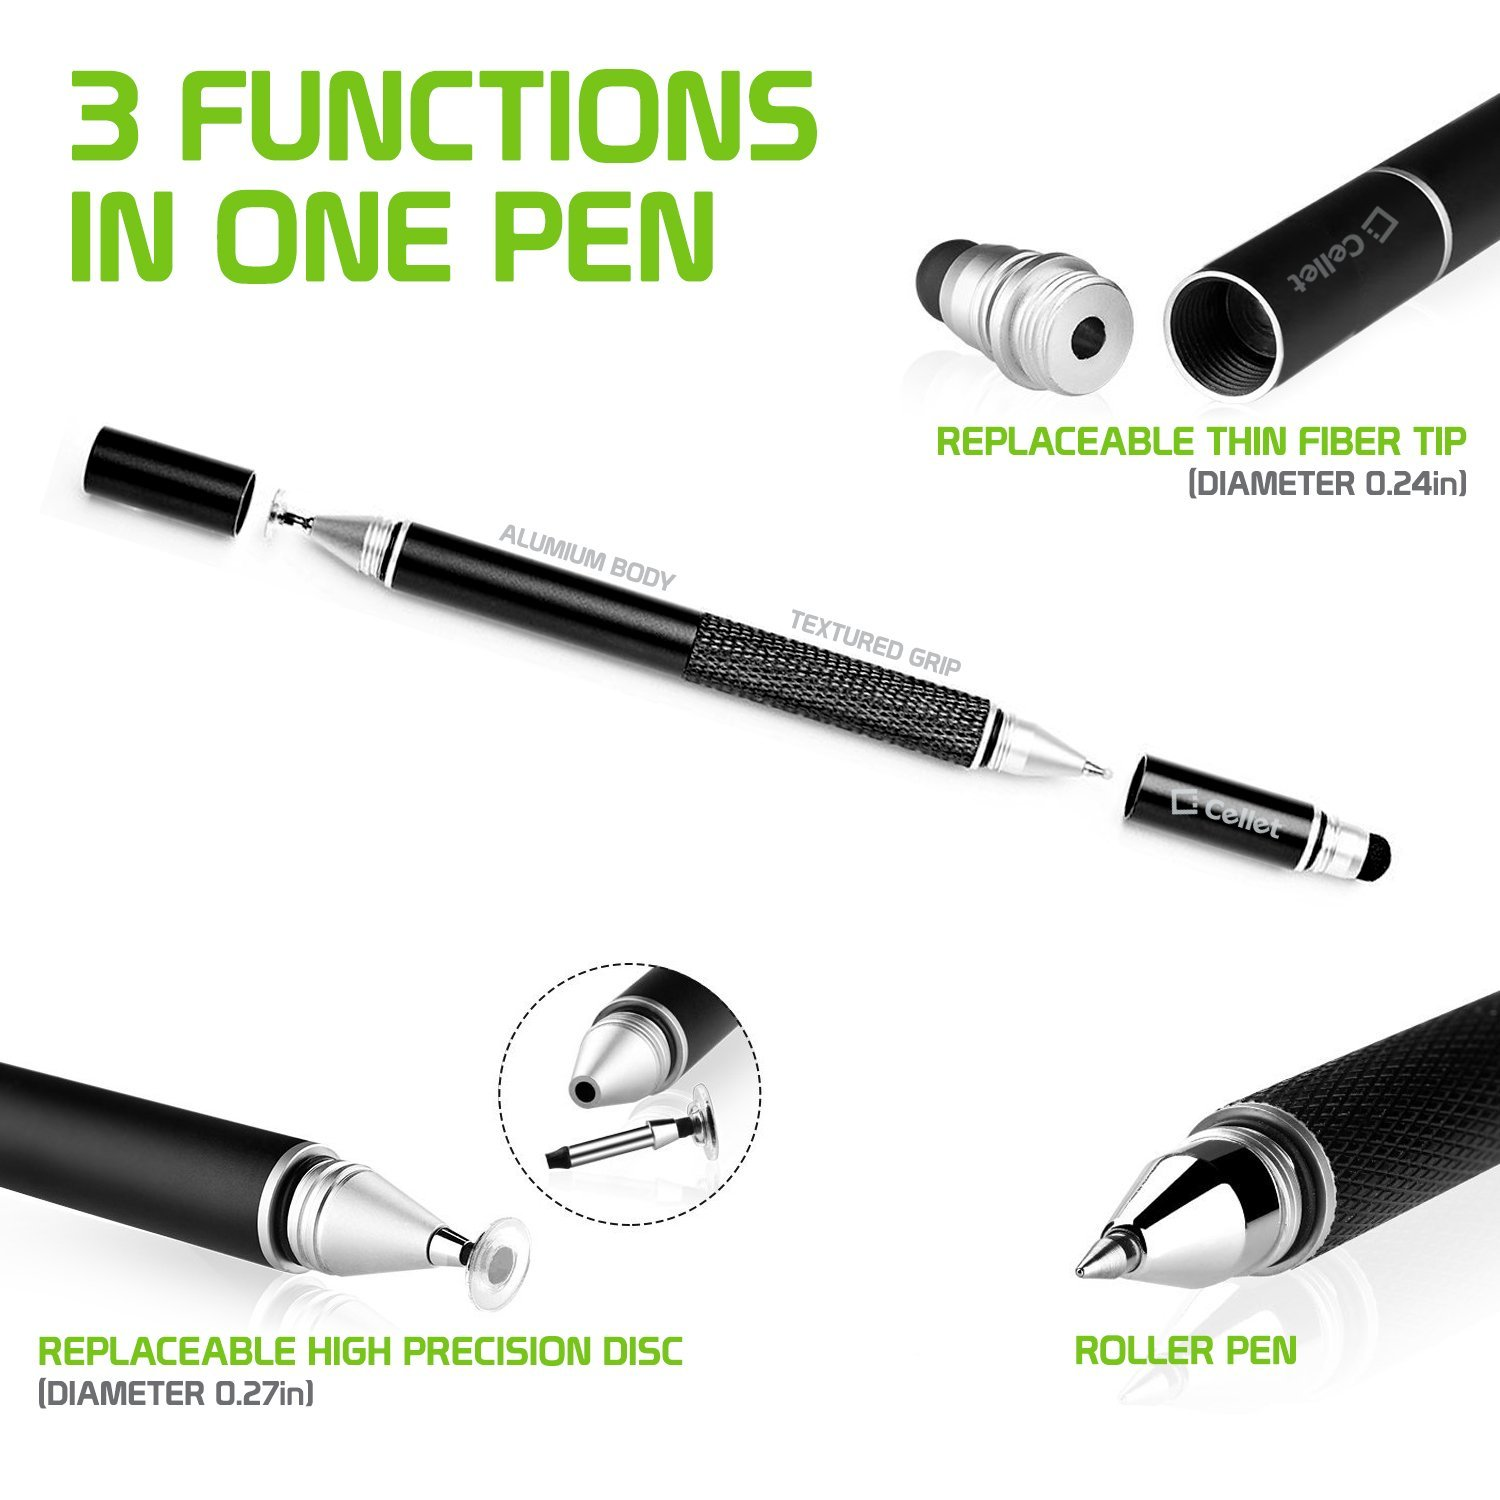 c6314d9cc85c7 Get Quotations · 3 in 1 Stylus Pen (Ballpoint Pen